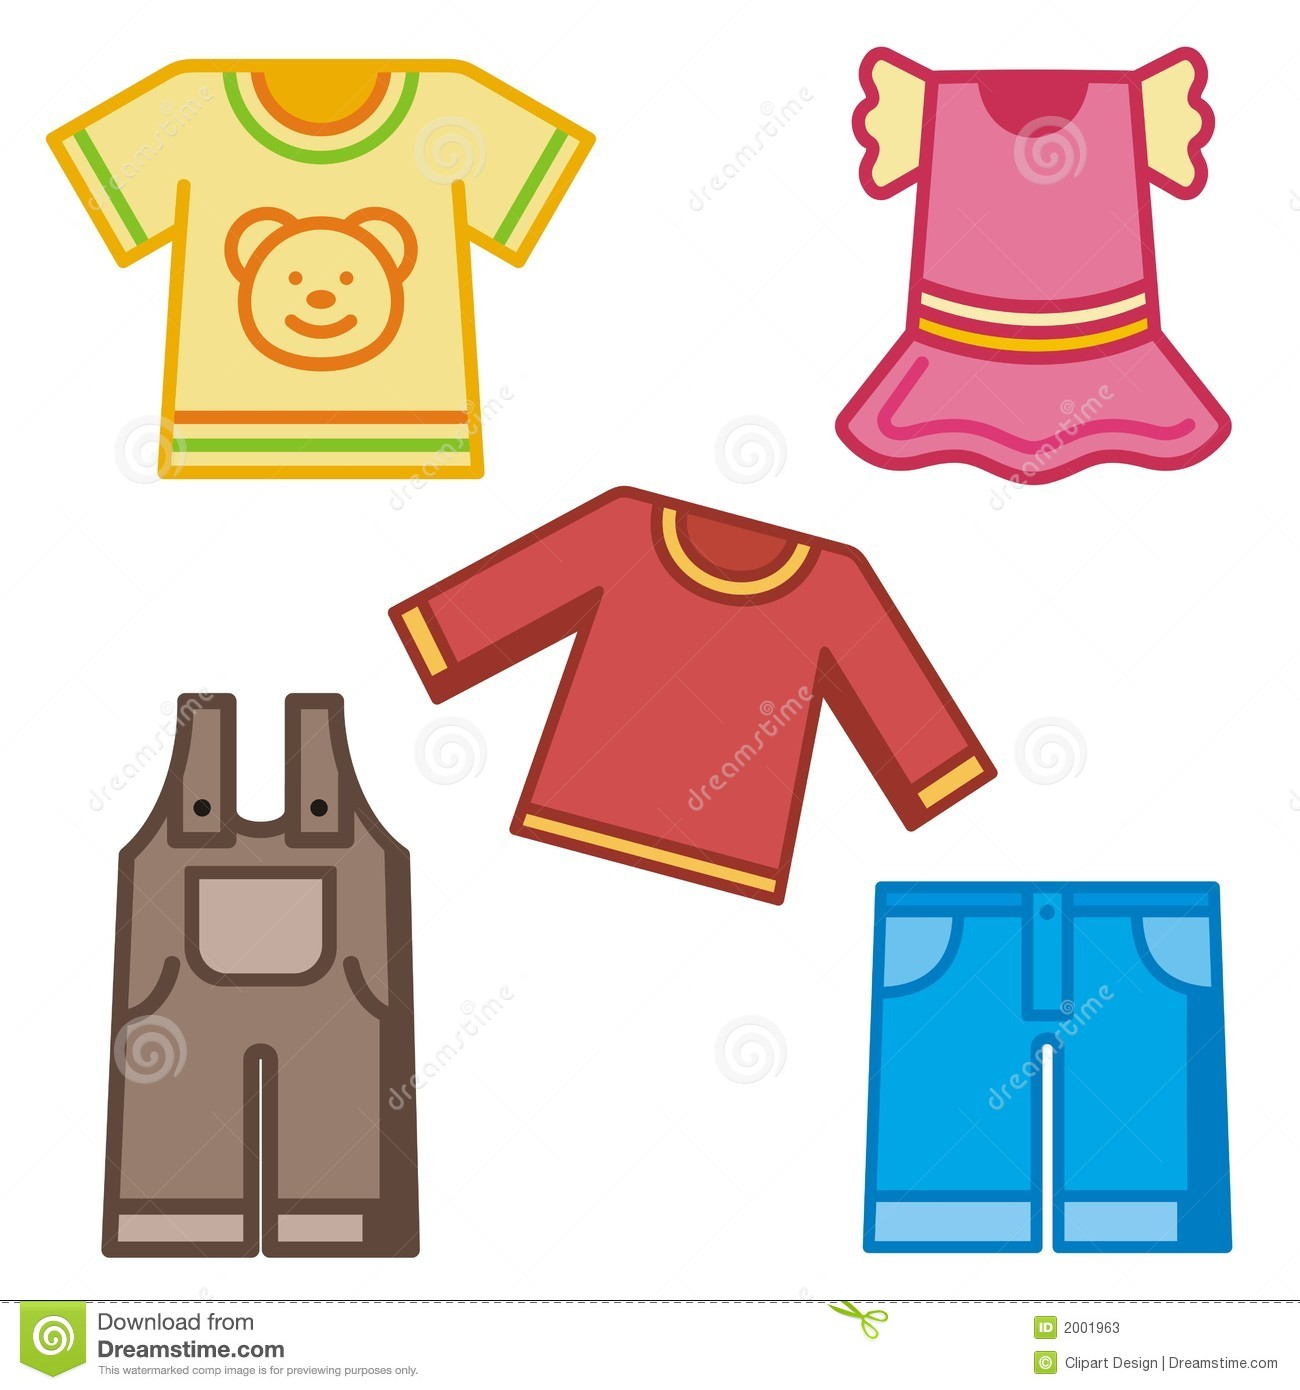 Children's clothing clipart